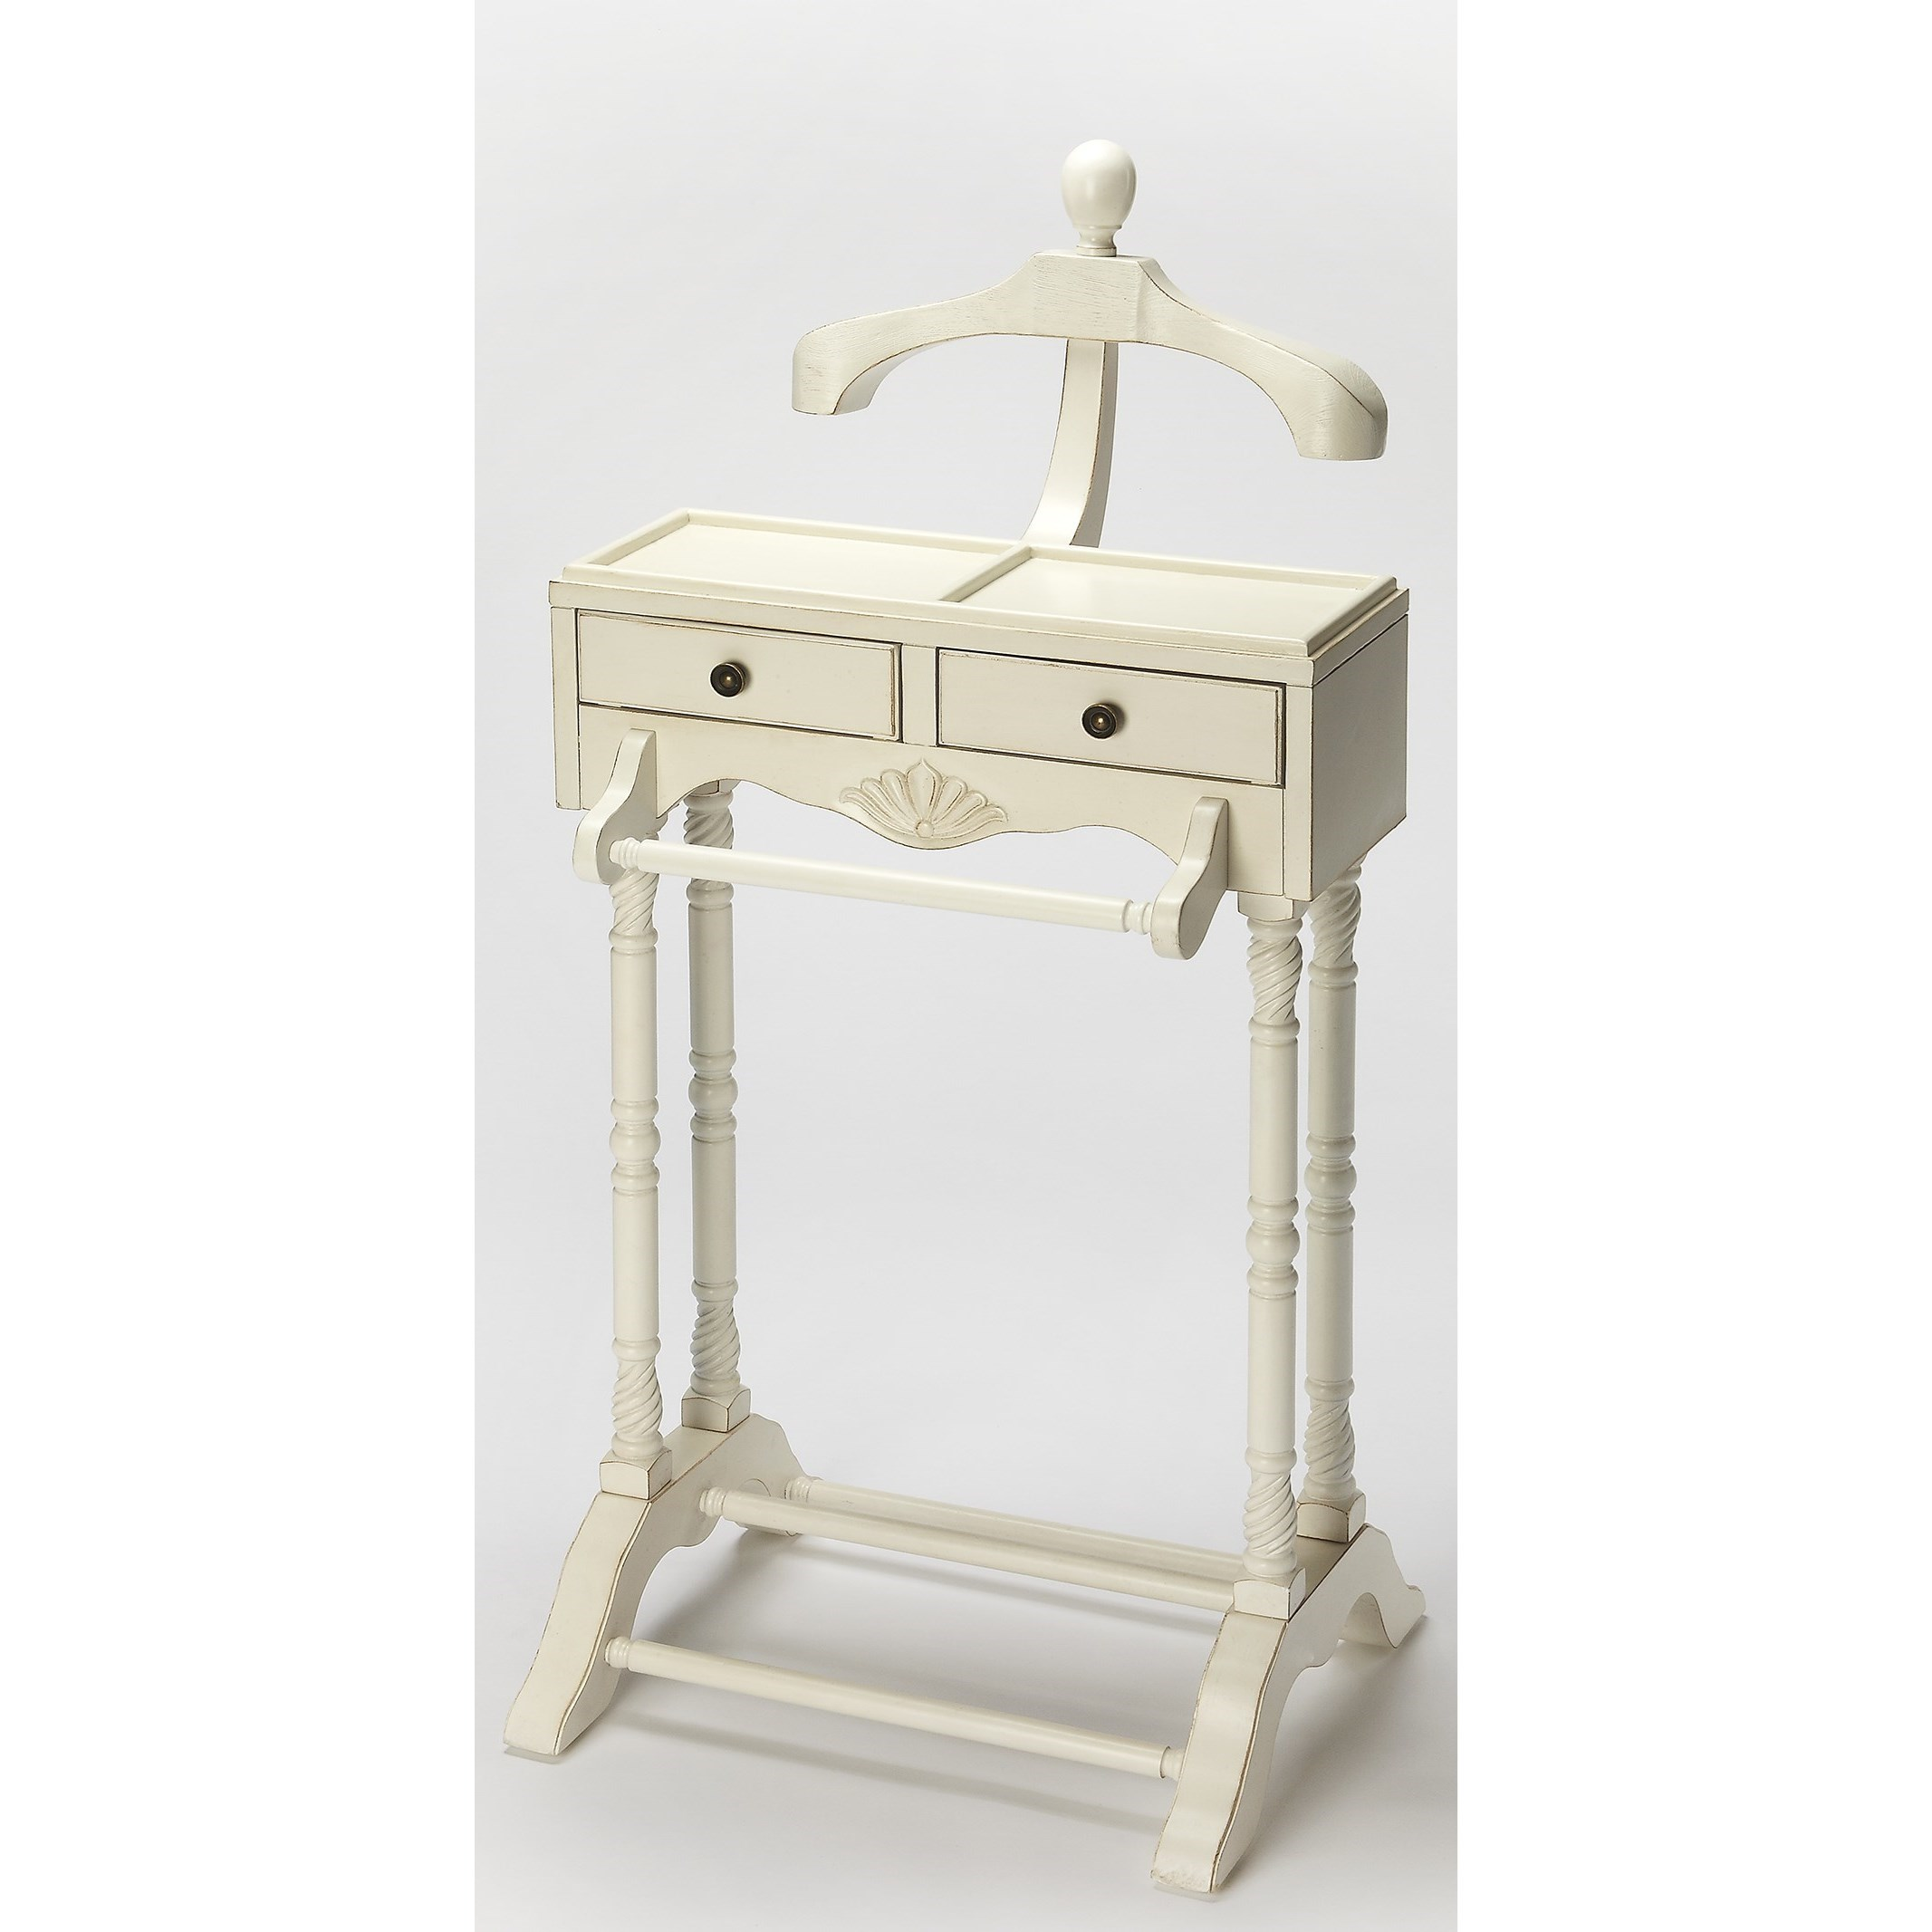 Butler Specialty Company Masterpiece Valet - Item Number: 0900222